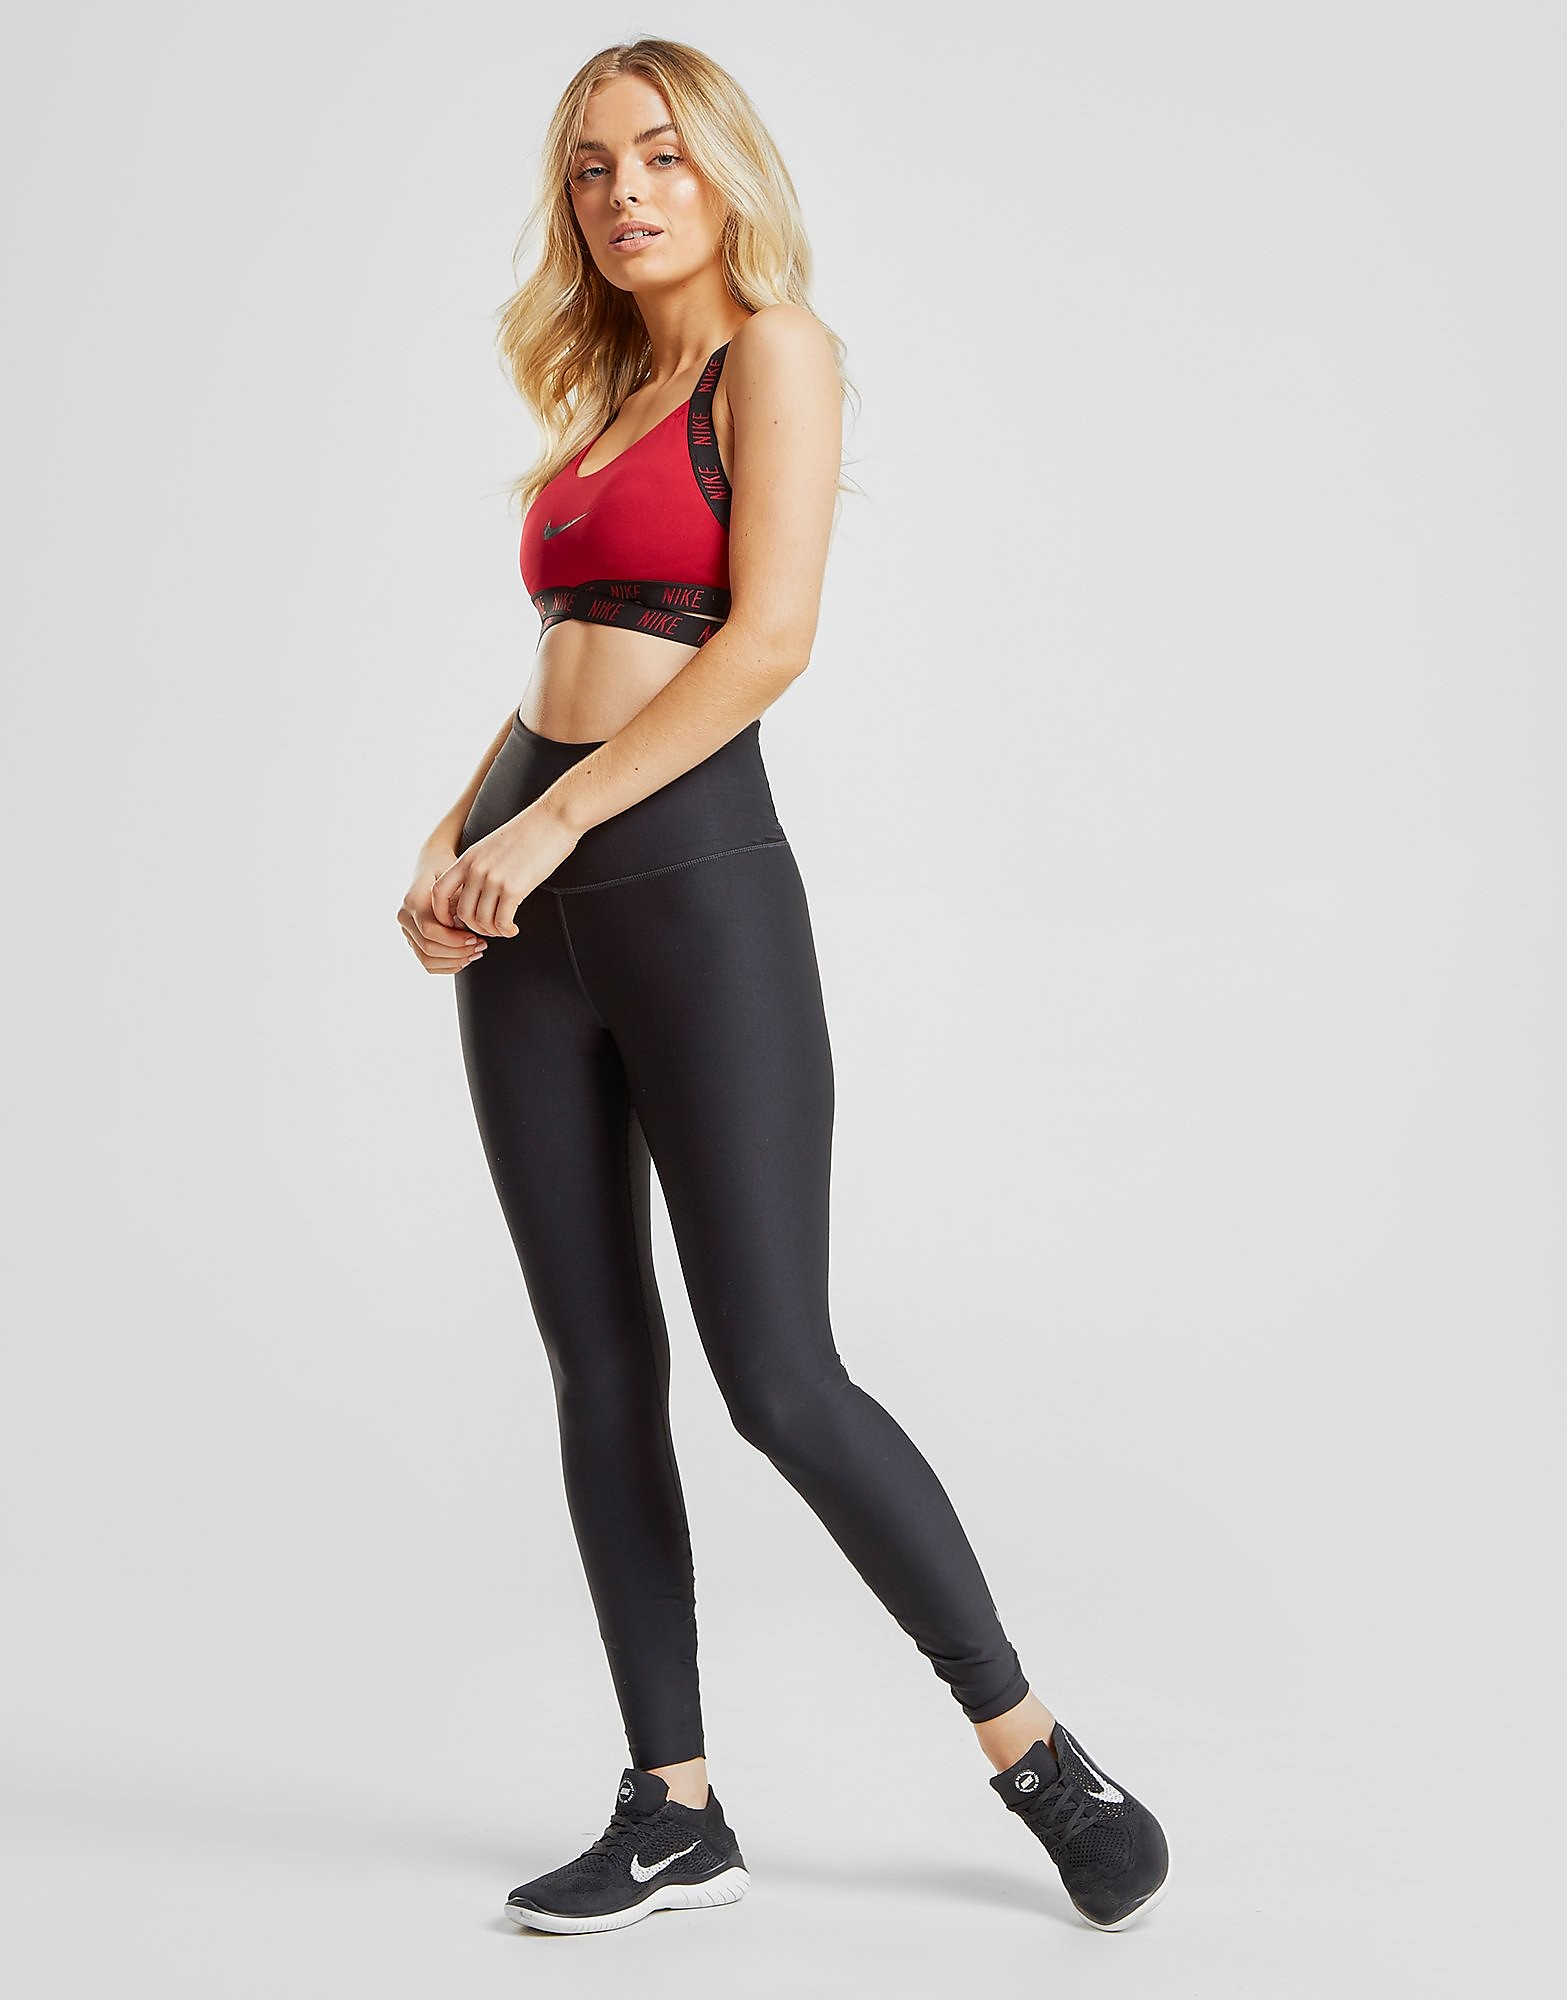 Nike Collants High Rise Sculpt